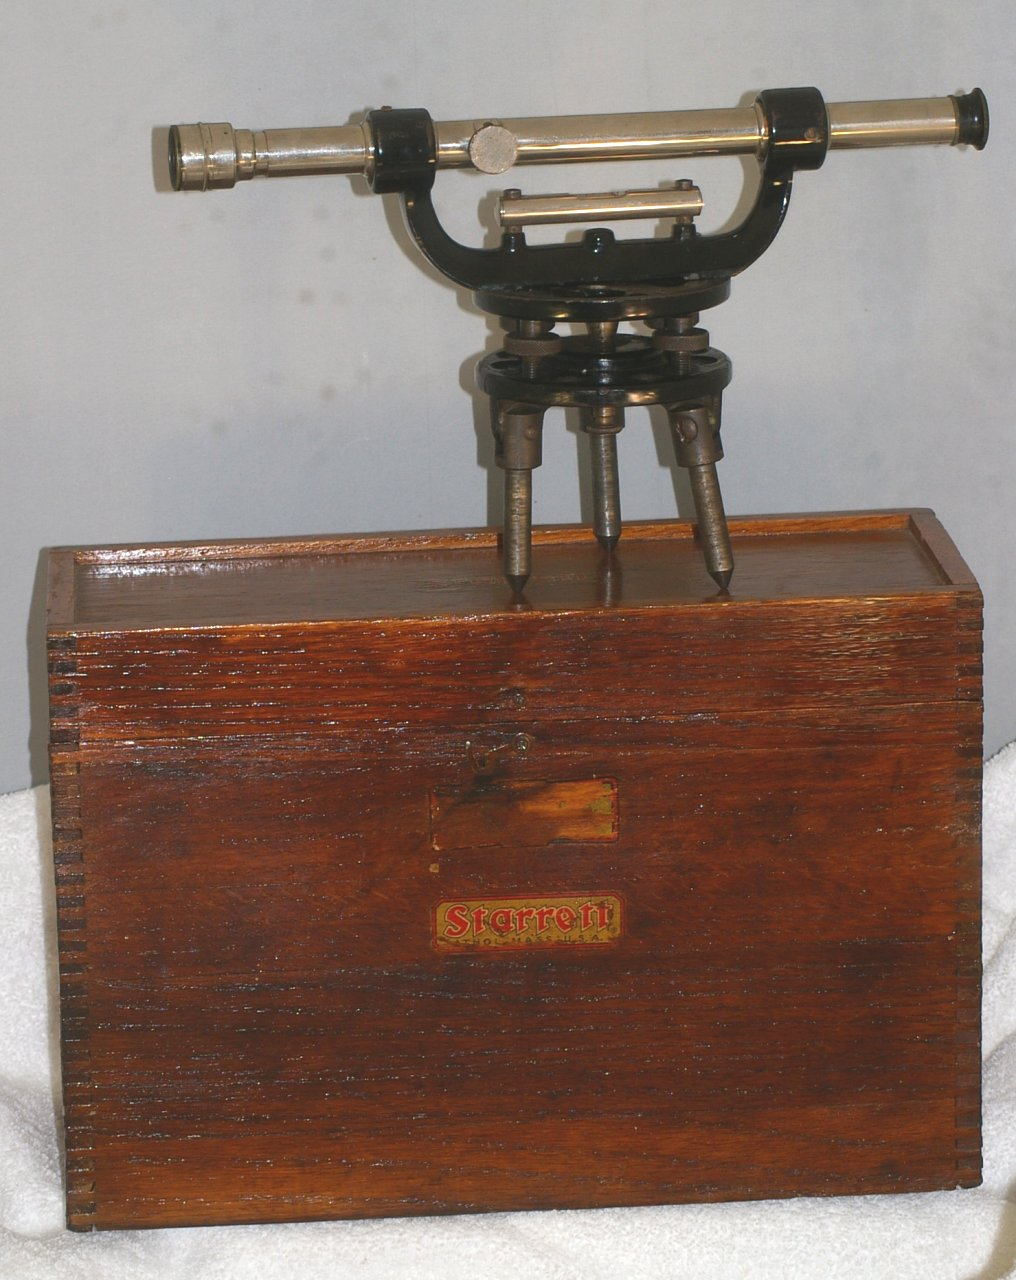 Starrett Surveyors Transit or Theodolite in case from 1938